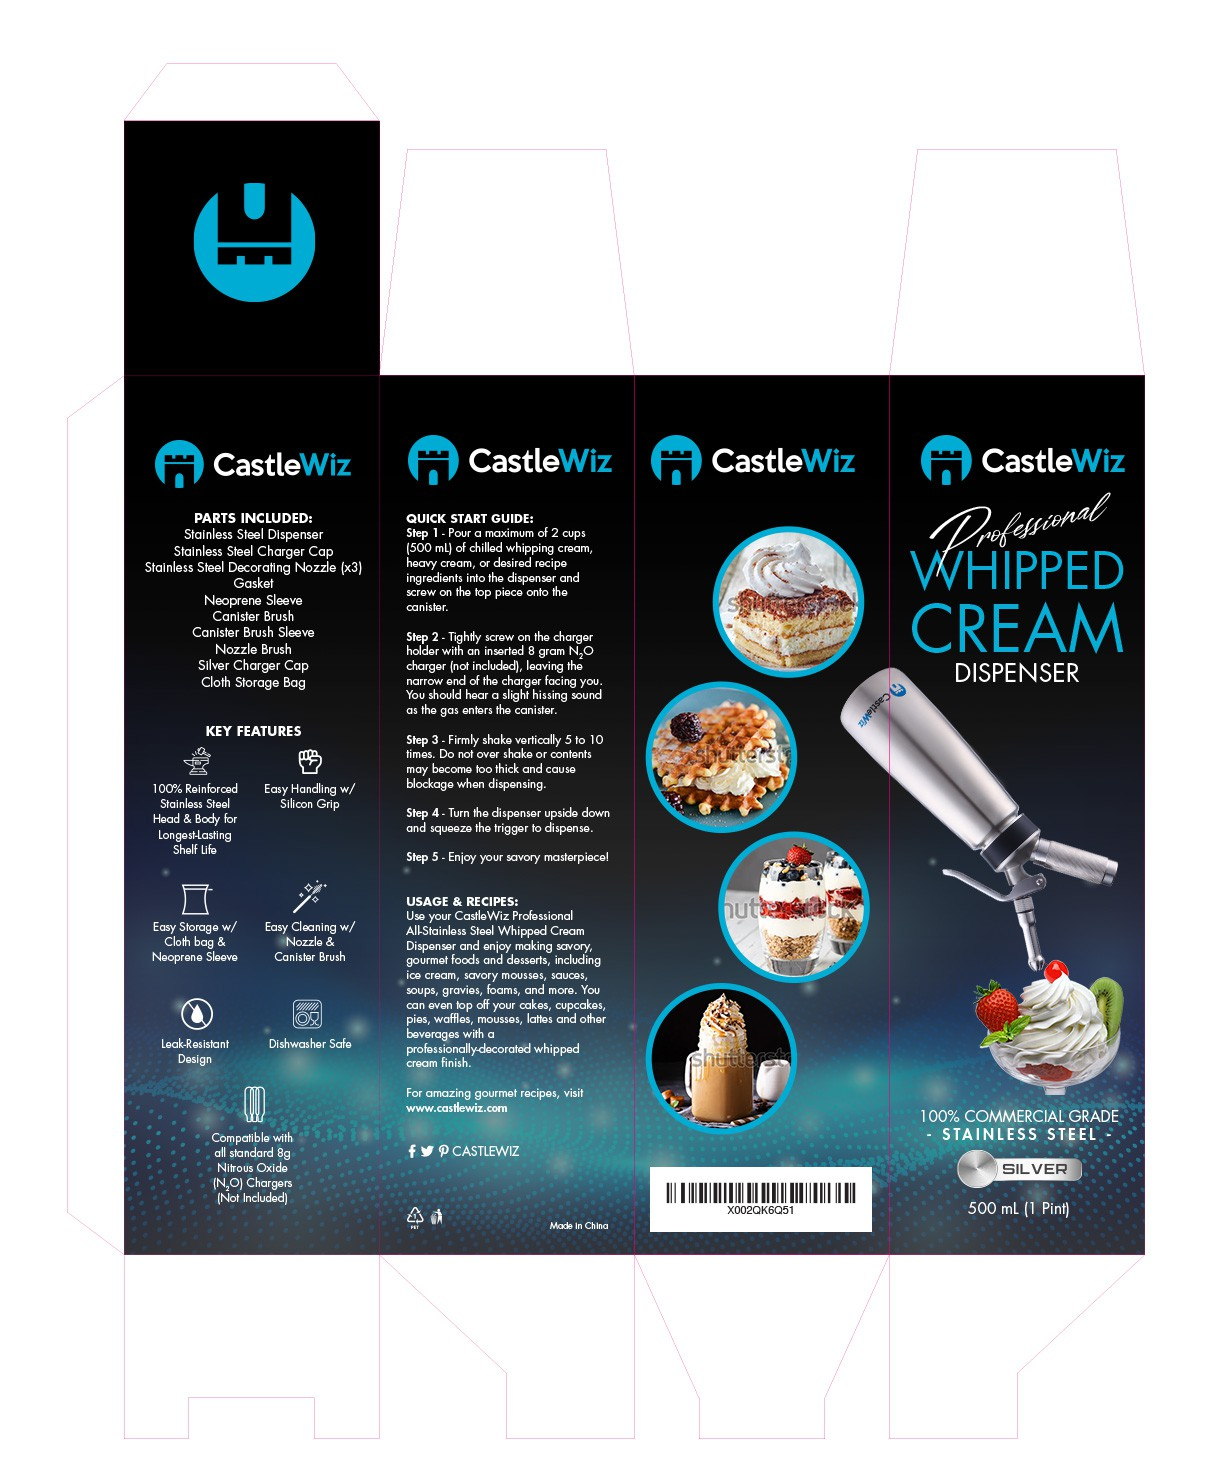 Whipped Cream Dispenser for creating beautiful, silky whipped cream on mouthwatering desserts